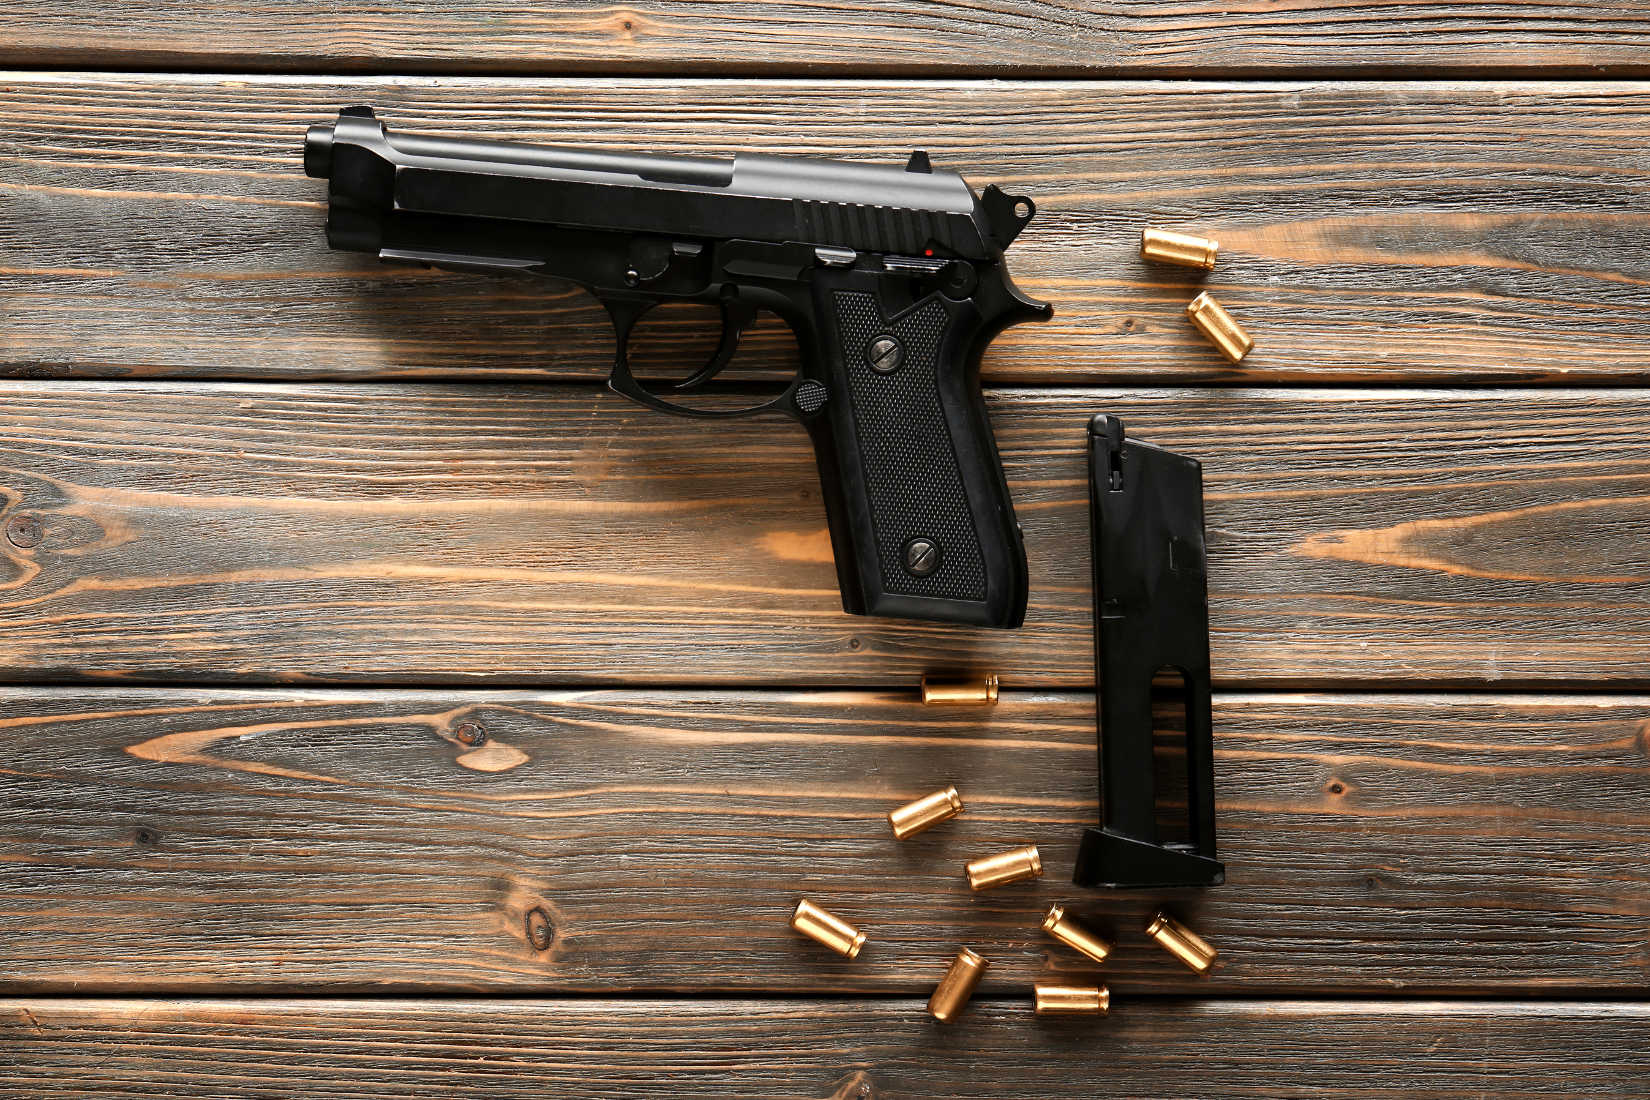 South Carolina County Enacts New Orleans-Style Gun Ban in Response to Covid-19